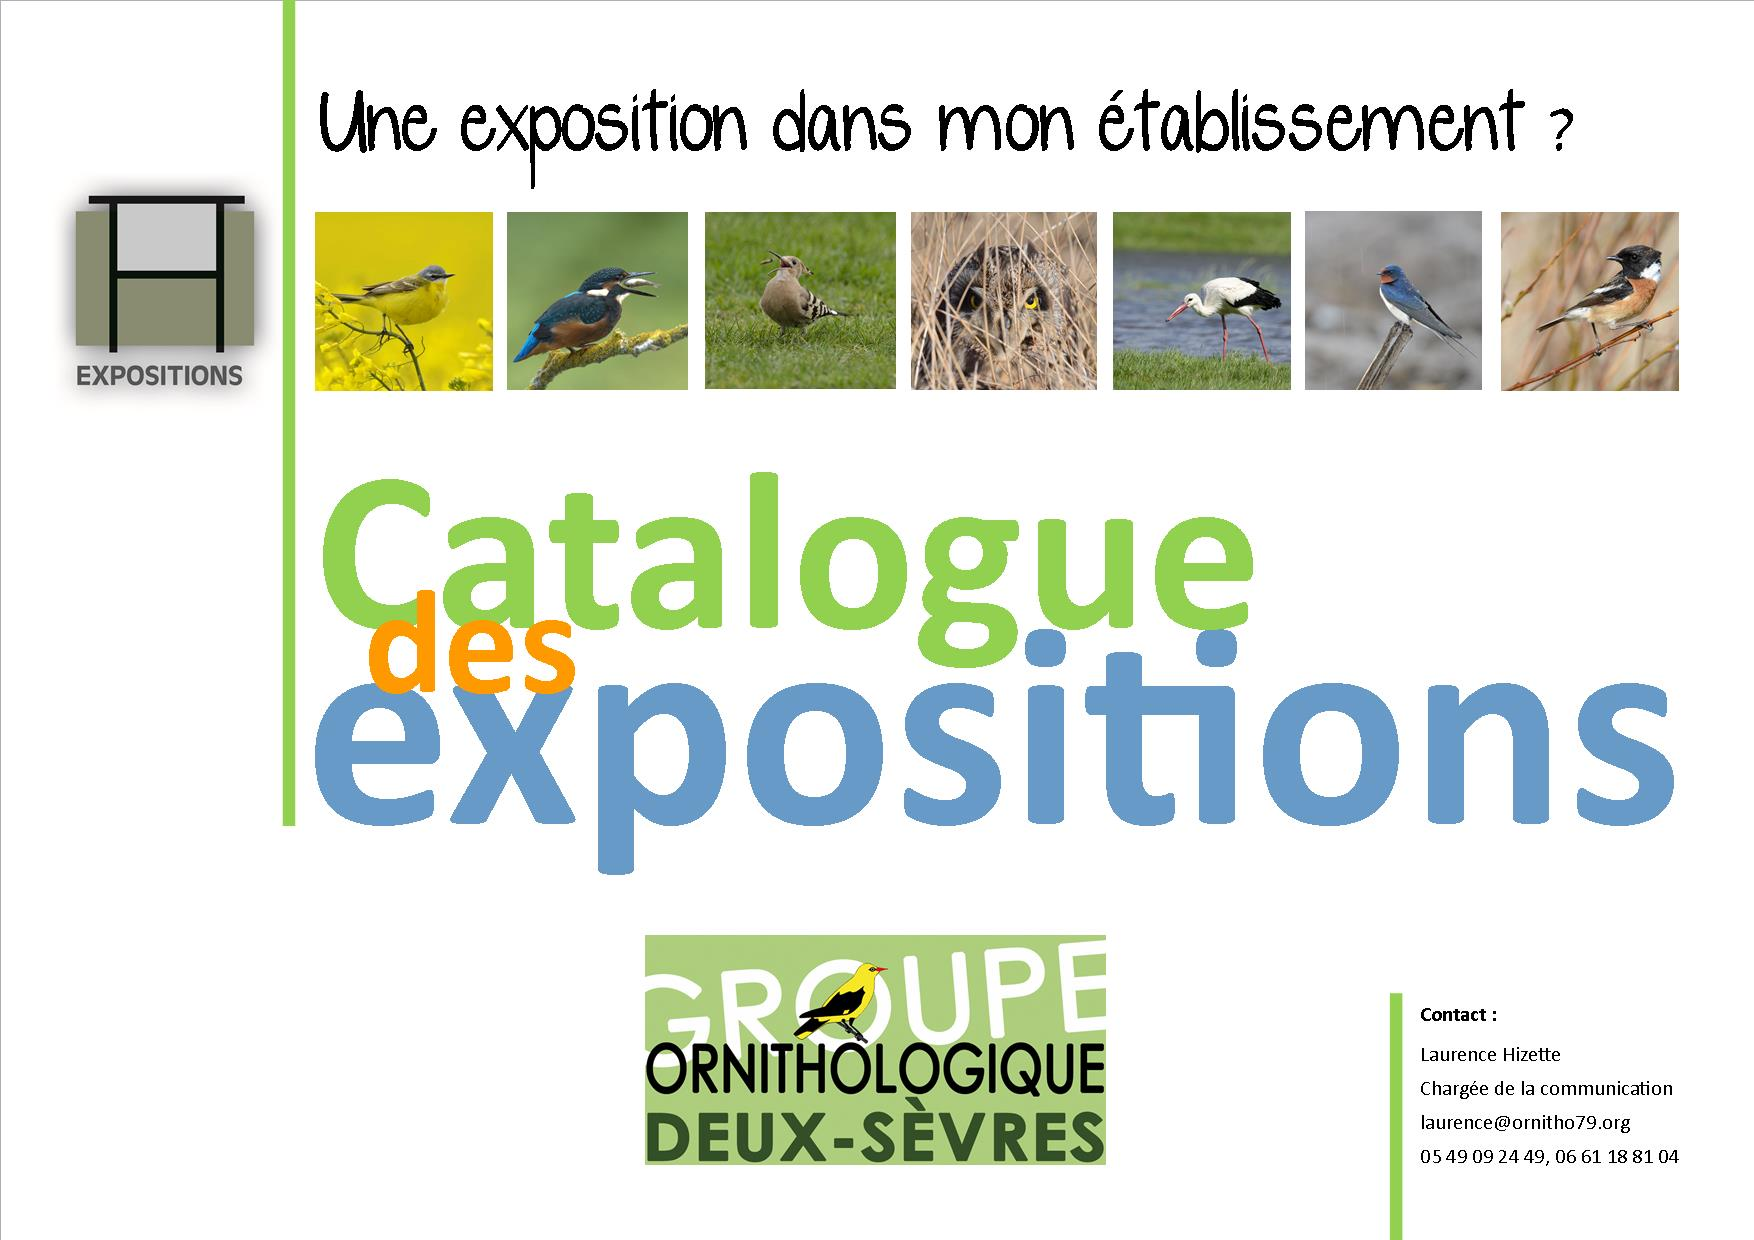 GODS-Catalogue des expositions